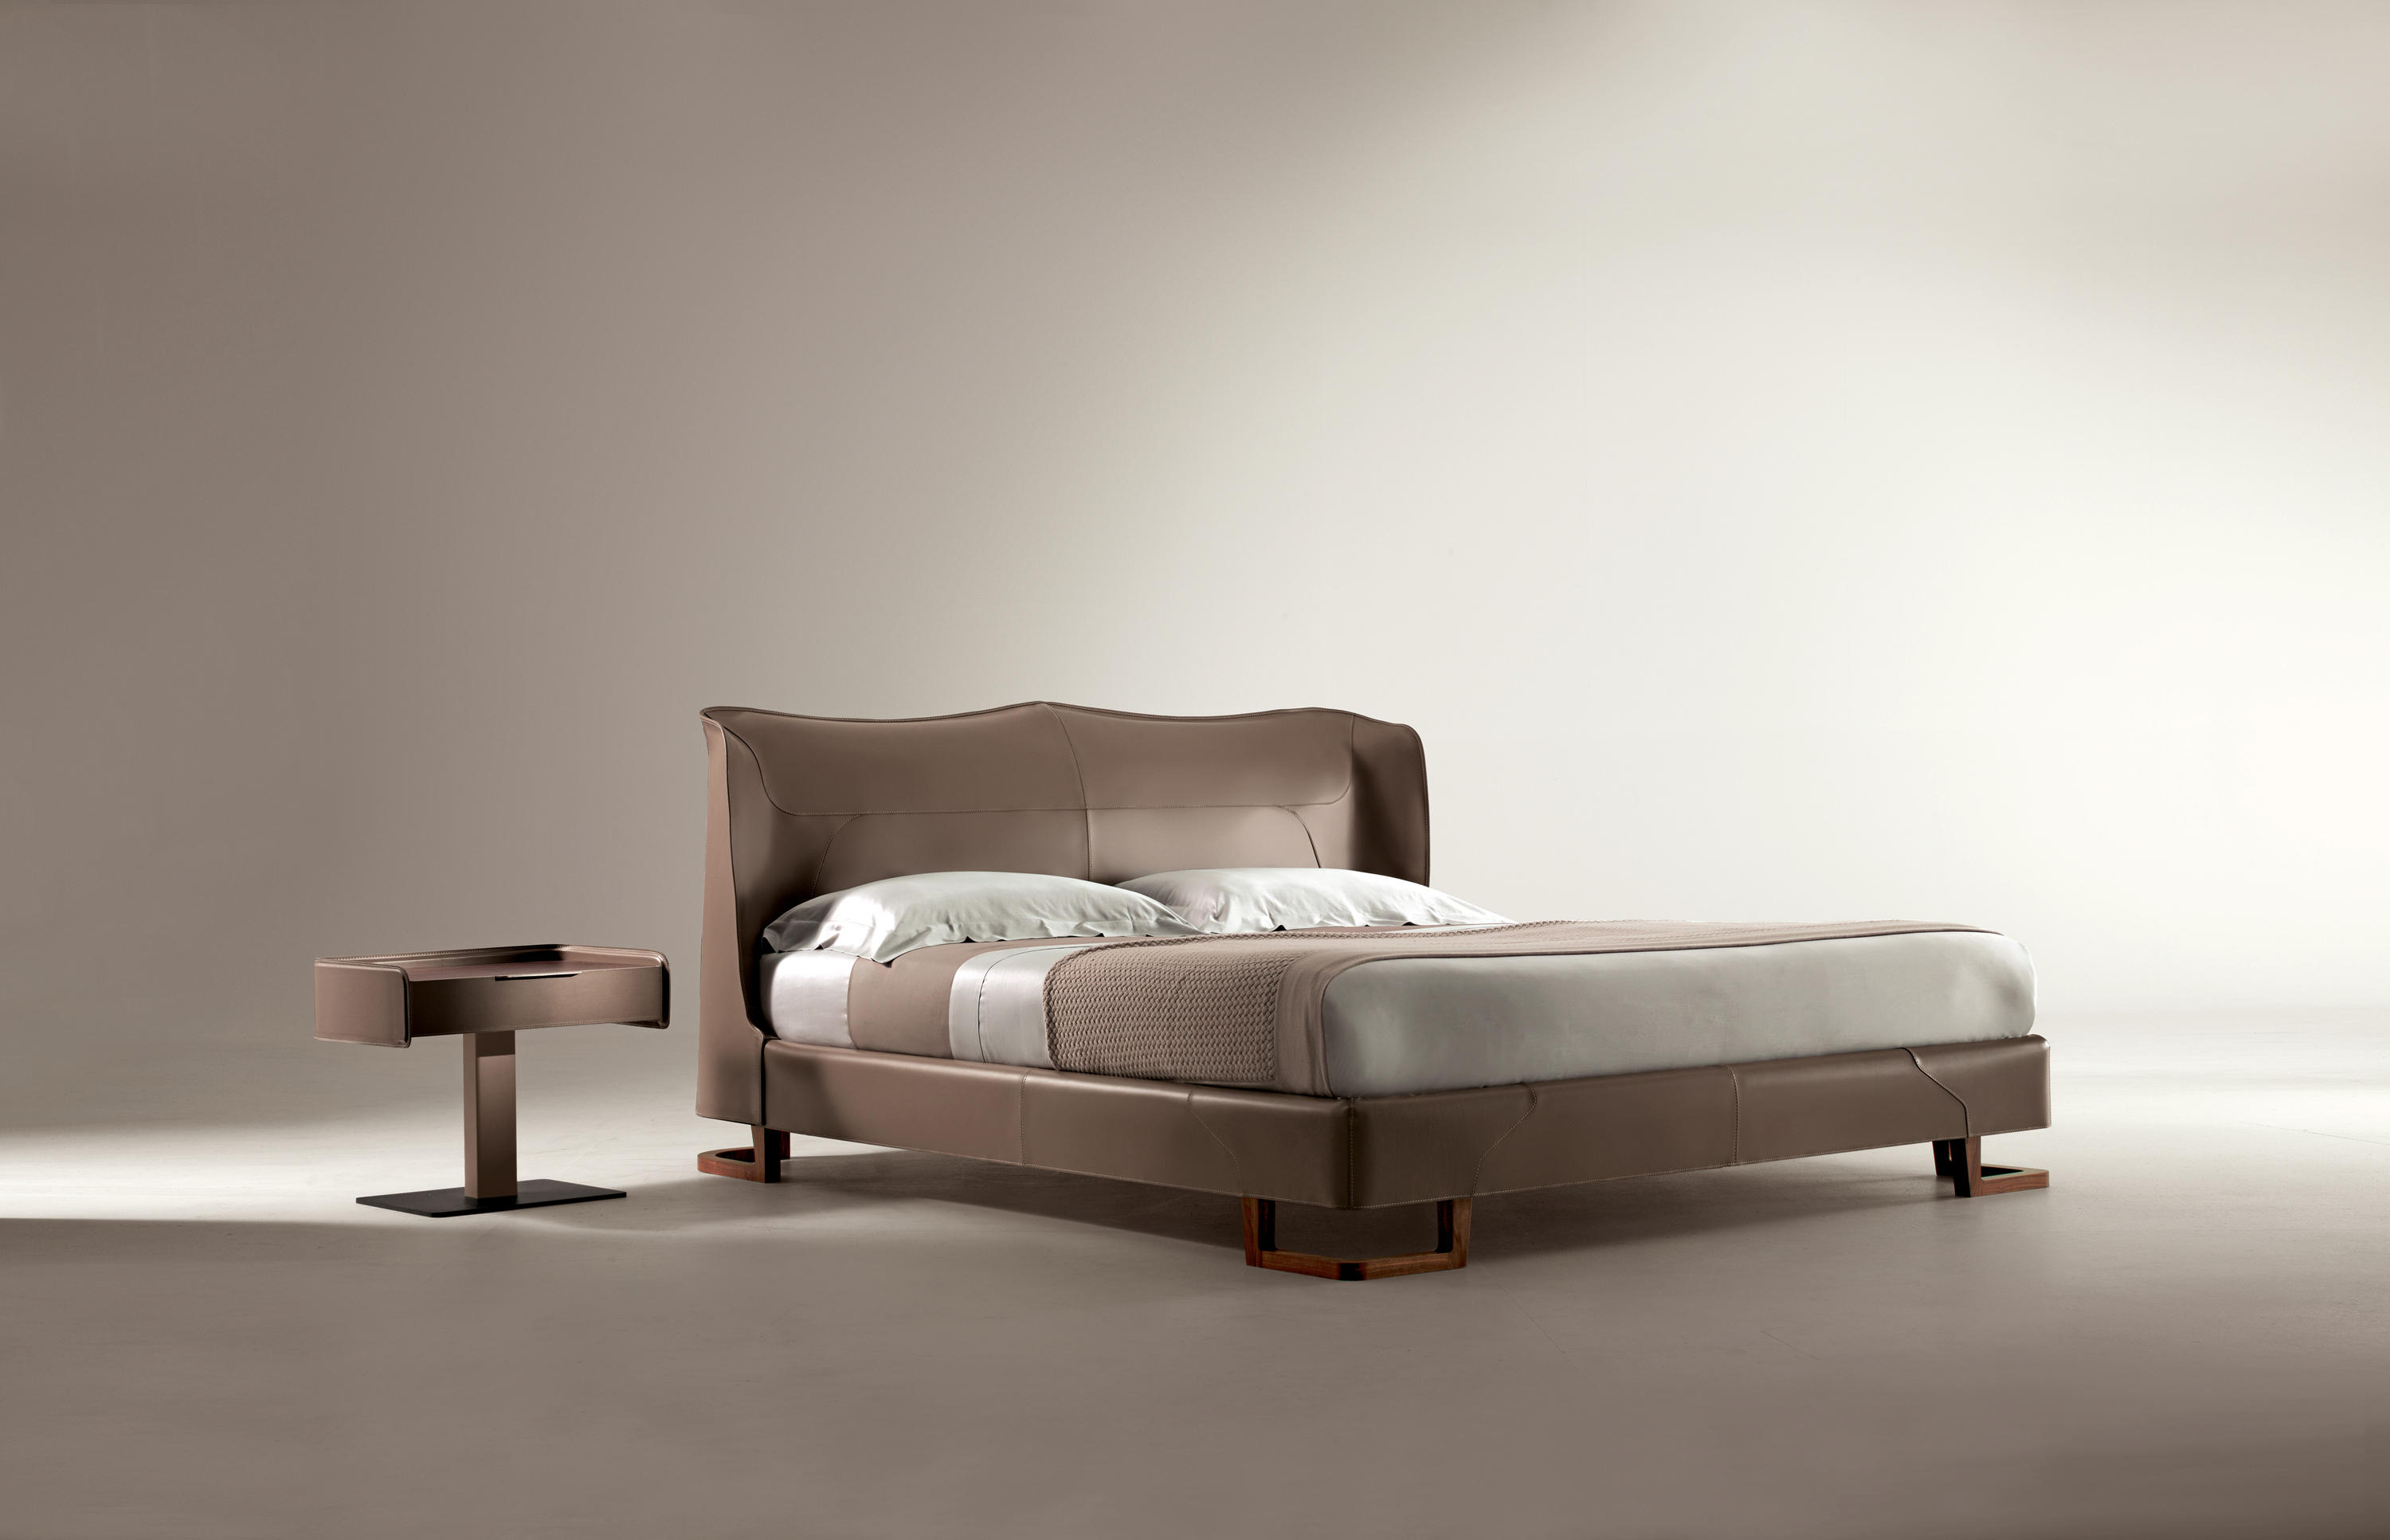 Corium Bed Beds From Giorgetti Architonic